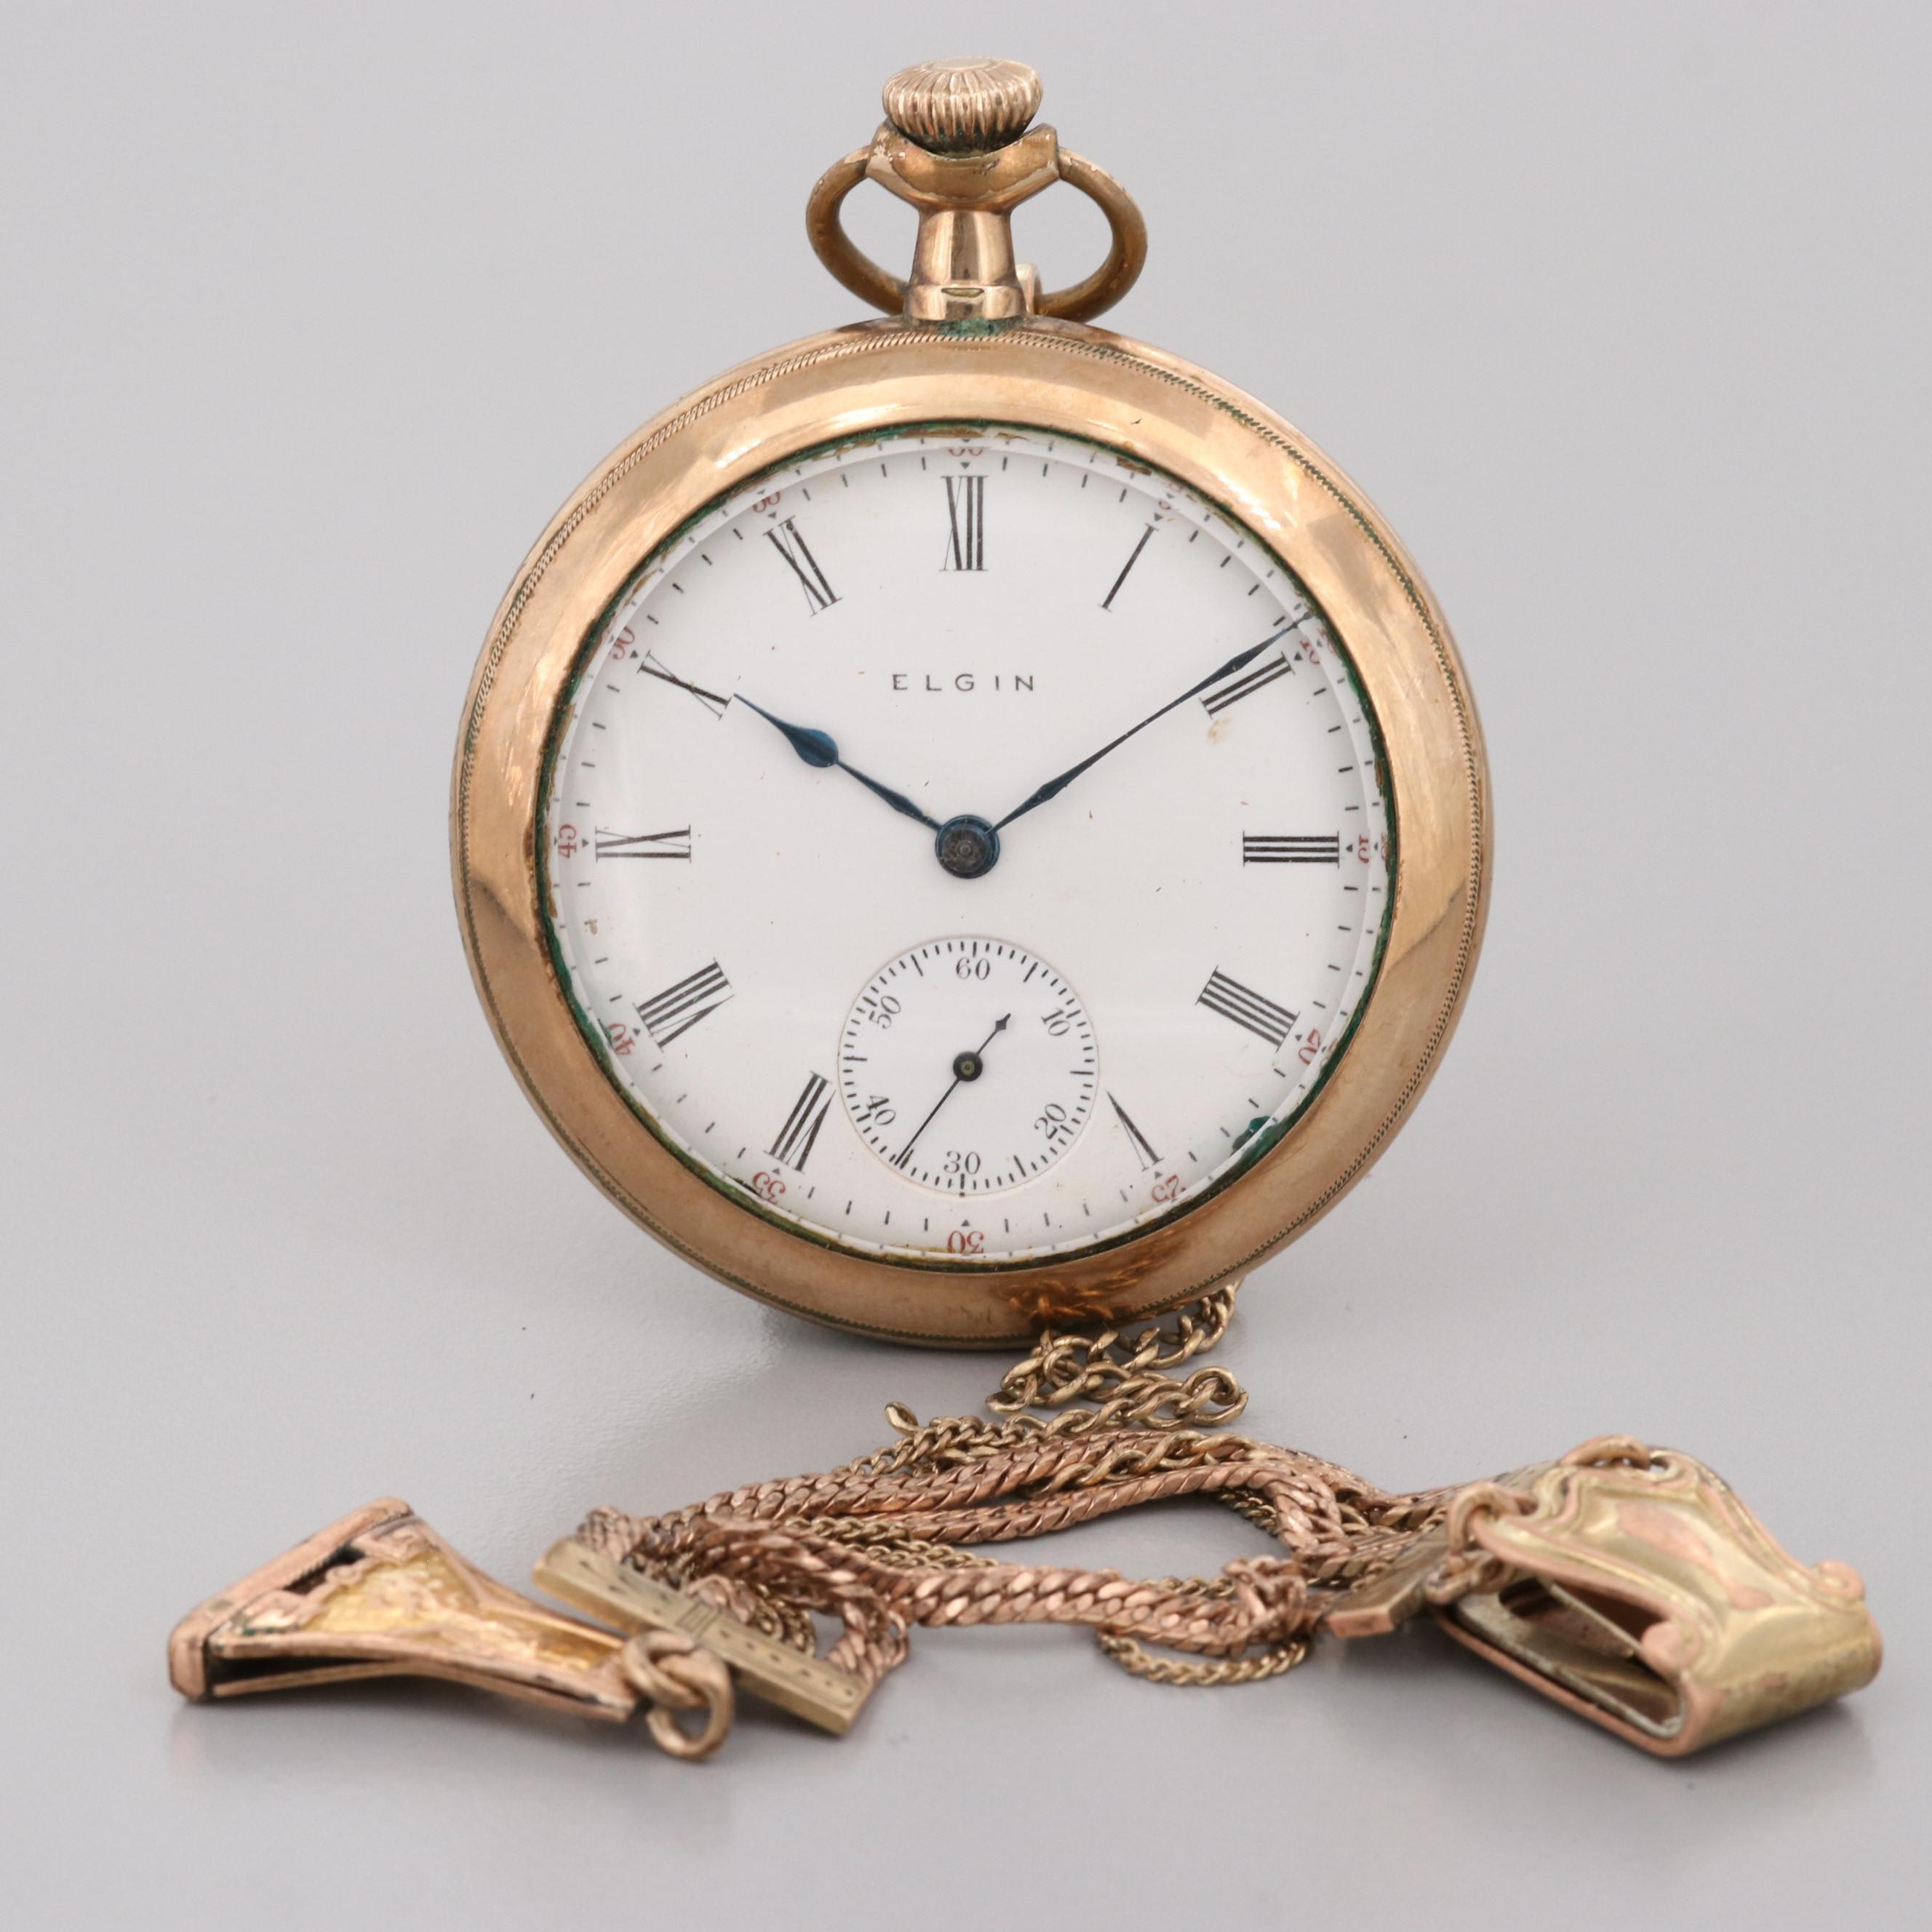 Antique Elgin Gold Filled Pocket Watch With Ornate Fob Chain